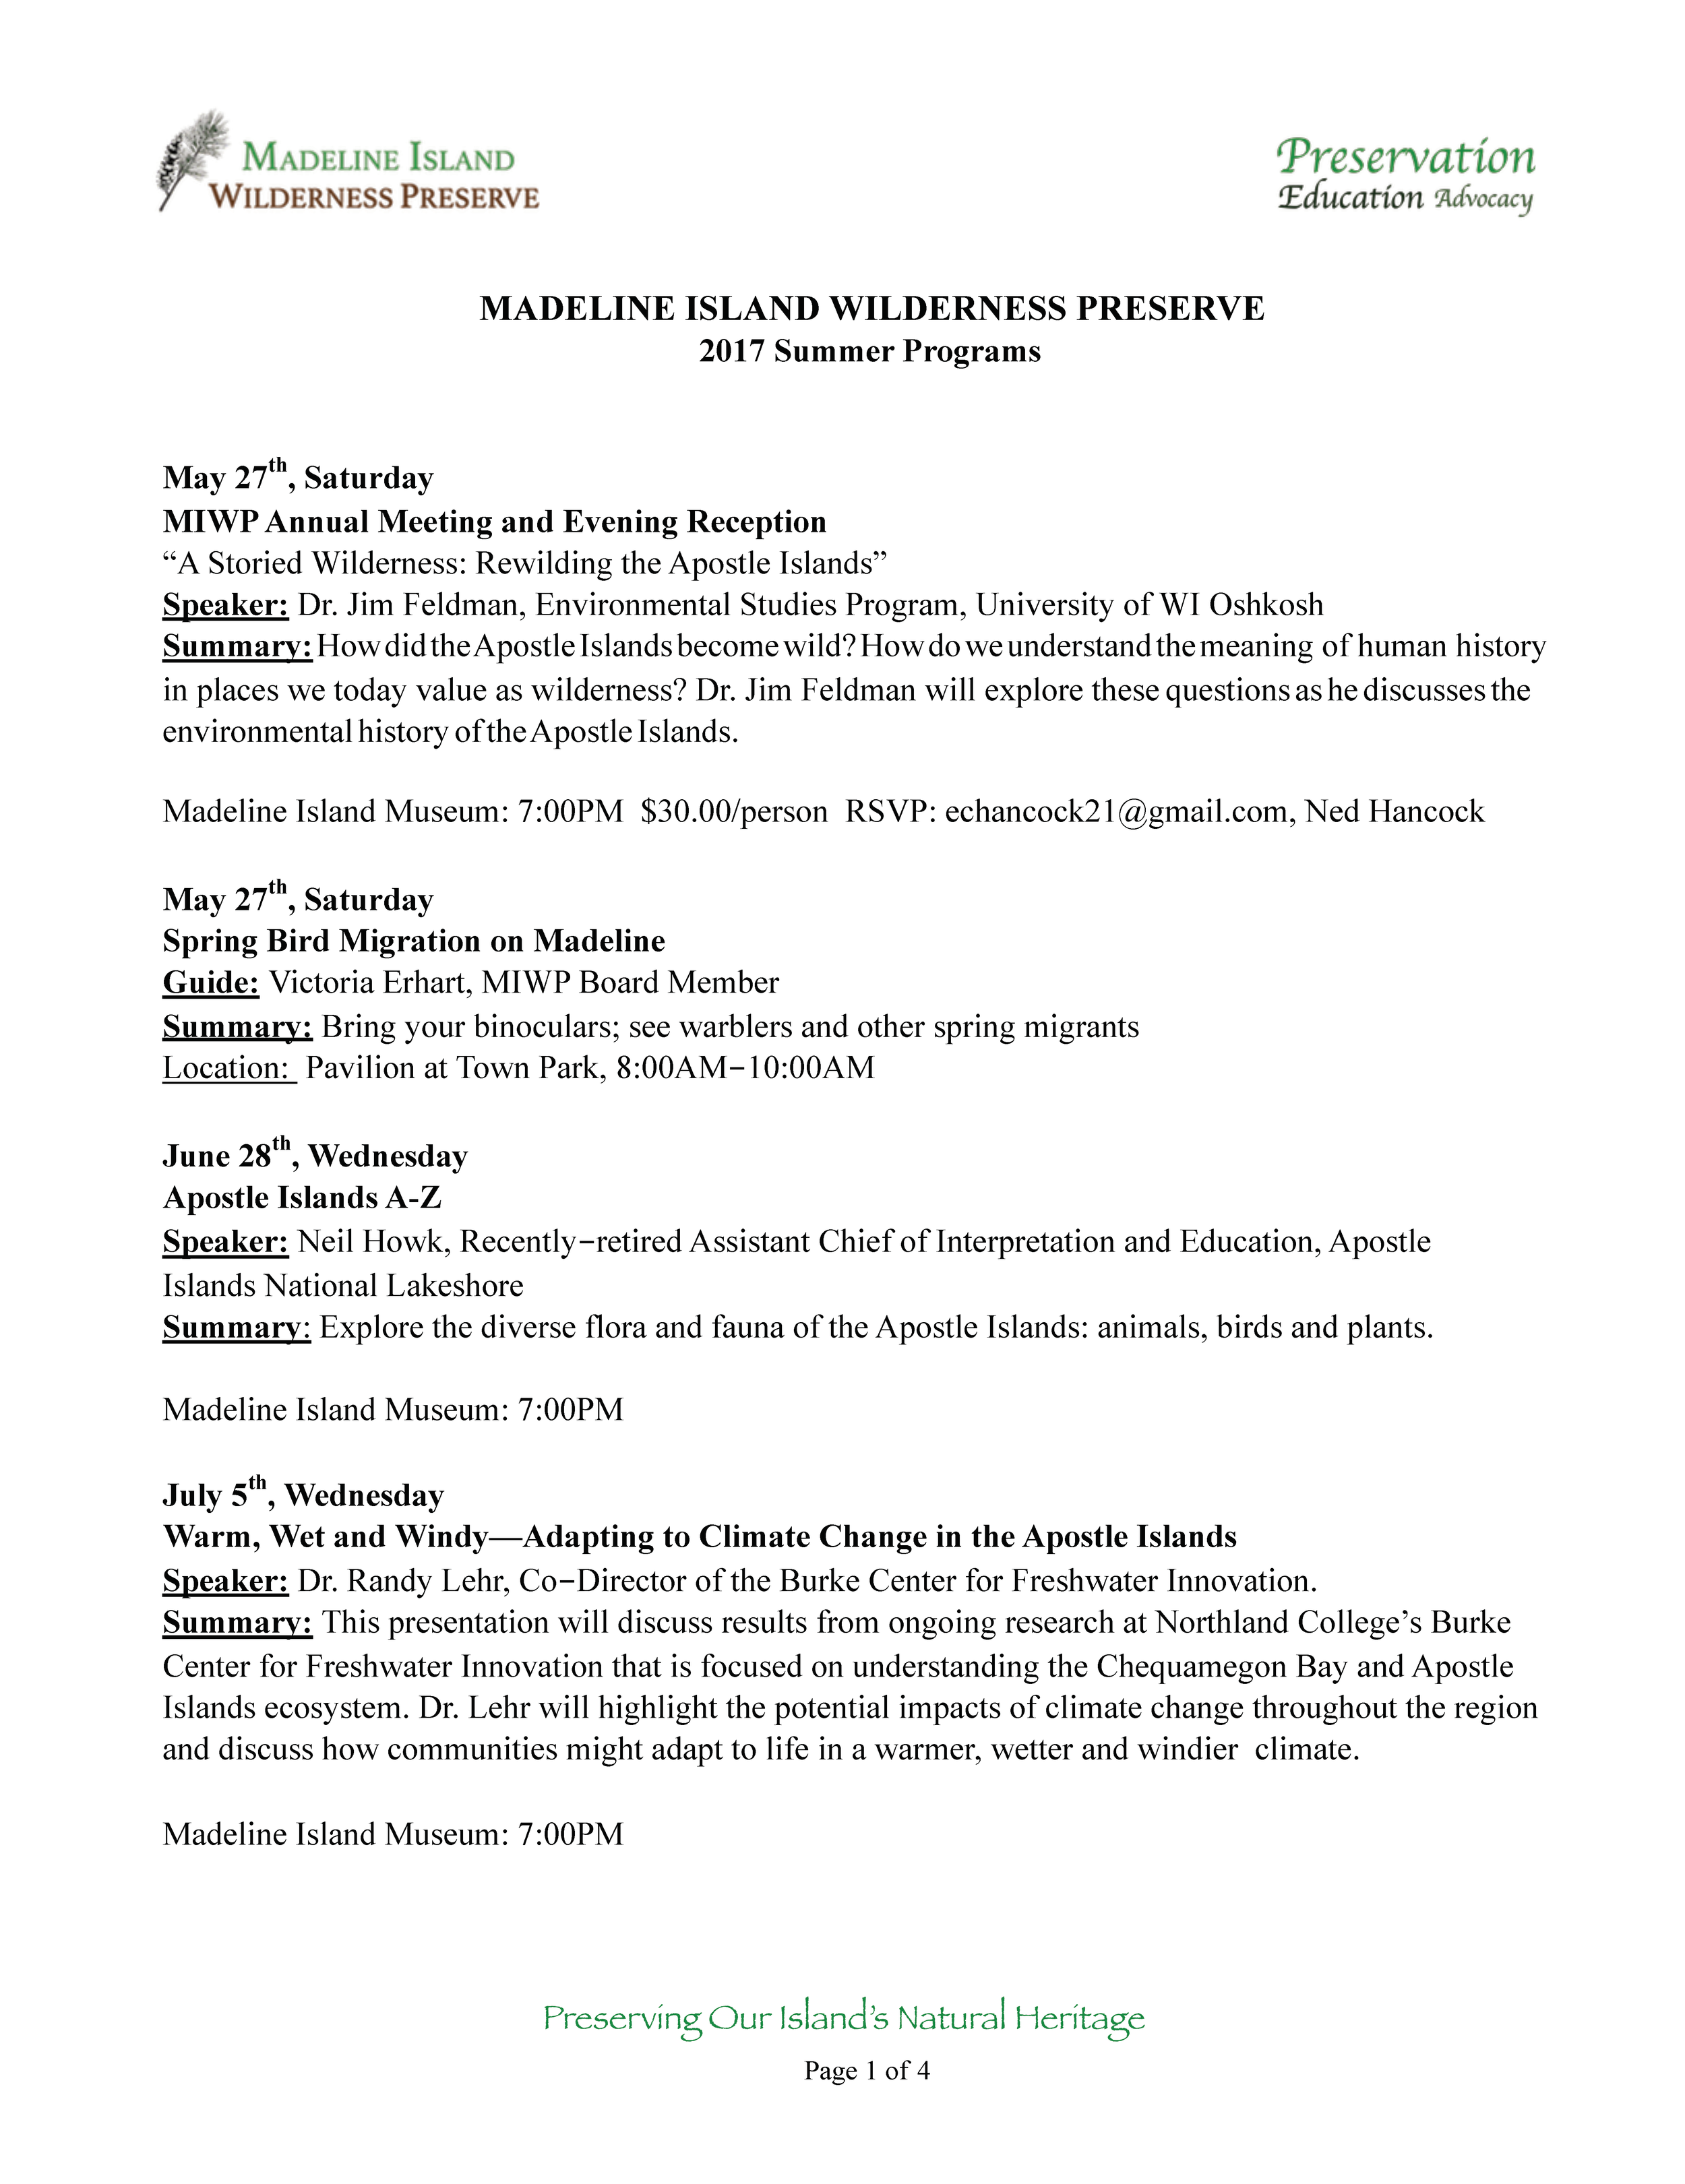 2017 MIWP Summer Programs_Page_1.png